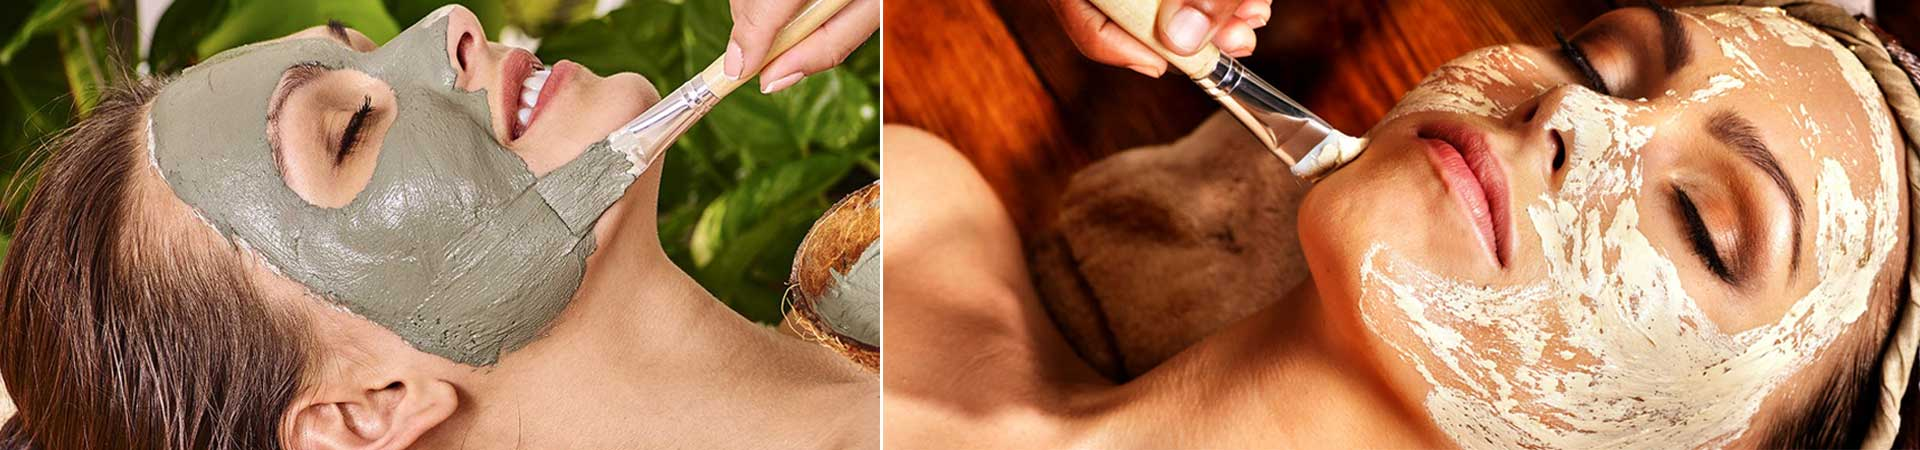 jssnaturecure_herbal_therapy_01